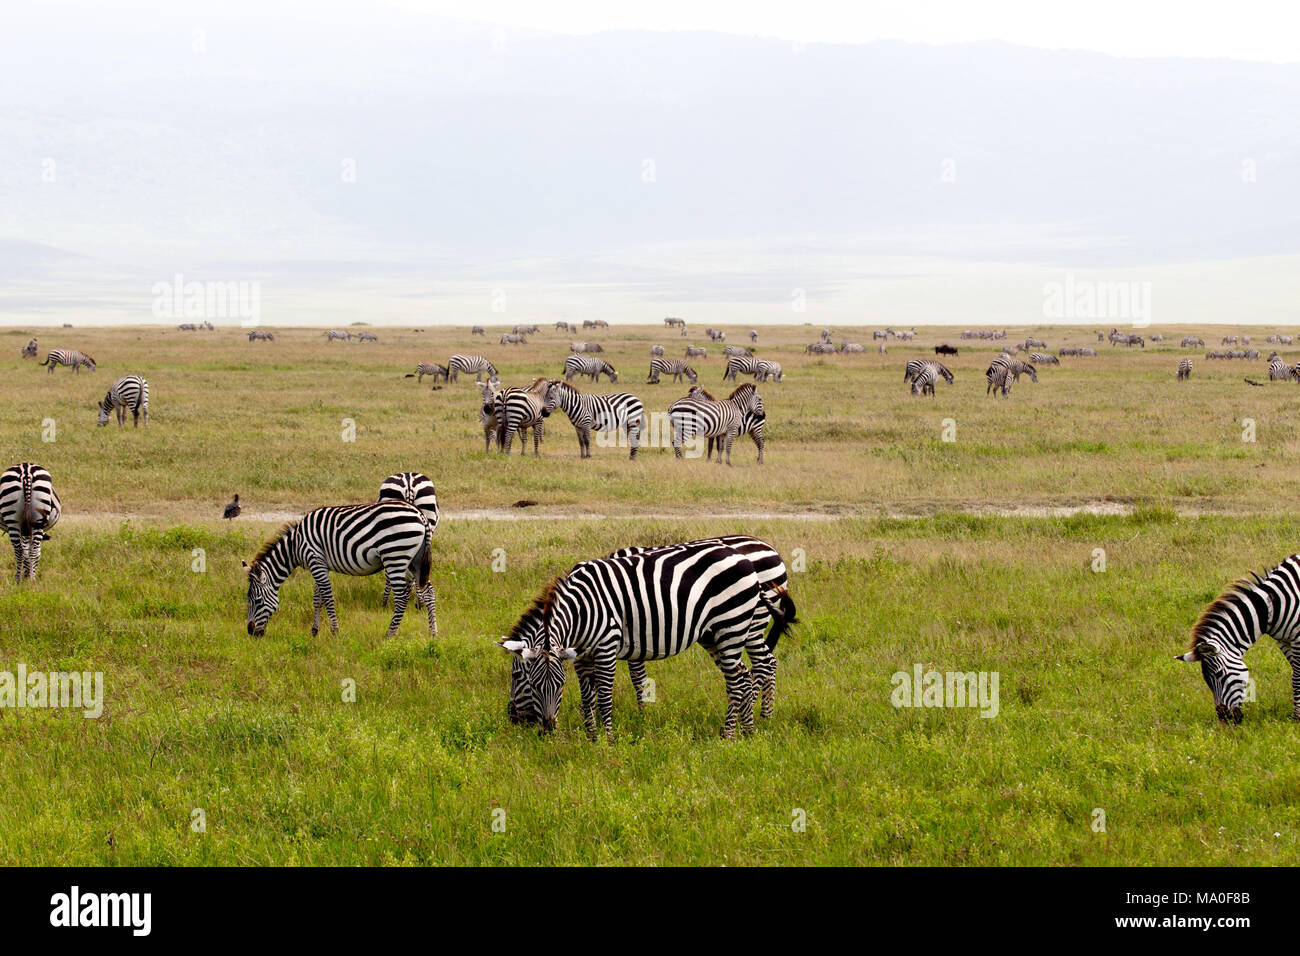 African Zebra Herd with Heads Down on Green Grassland - Stock Image